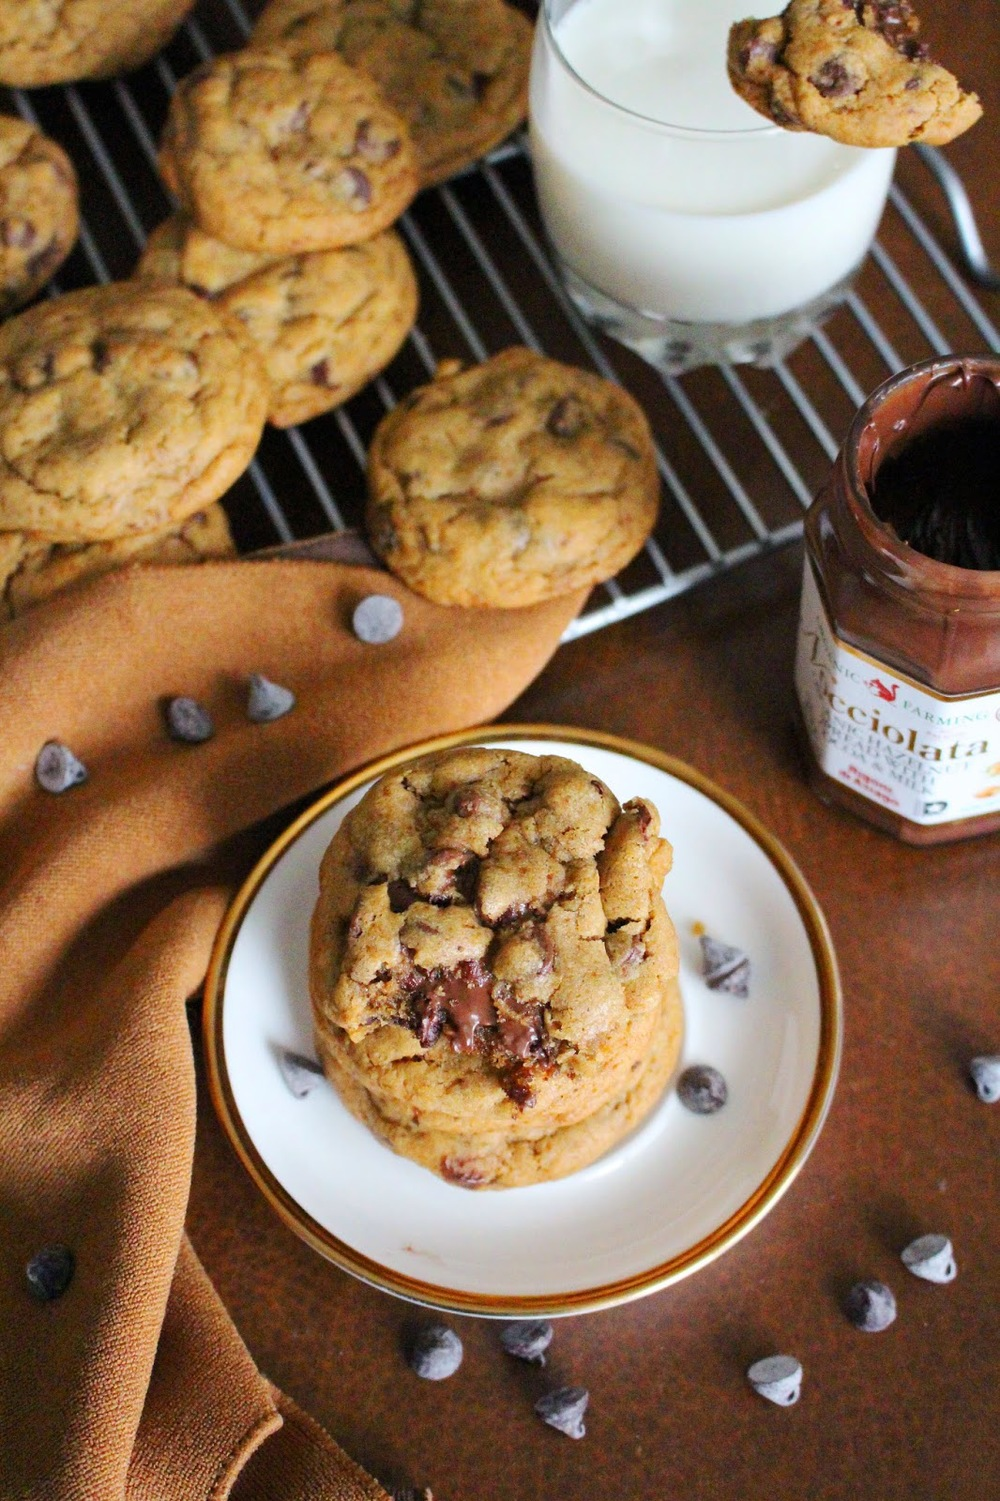 Stuffed+Chocolate+Chip+Cookies+049.e.JPG